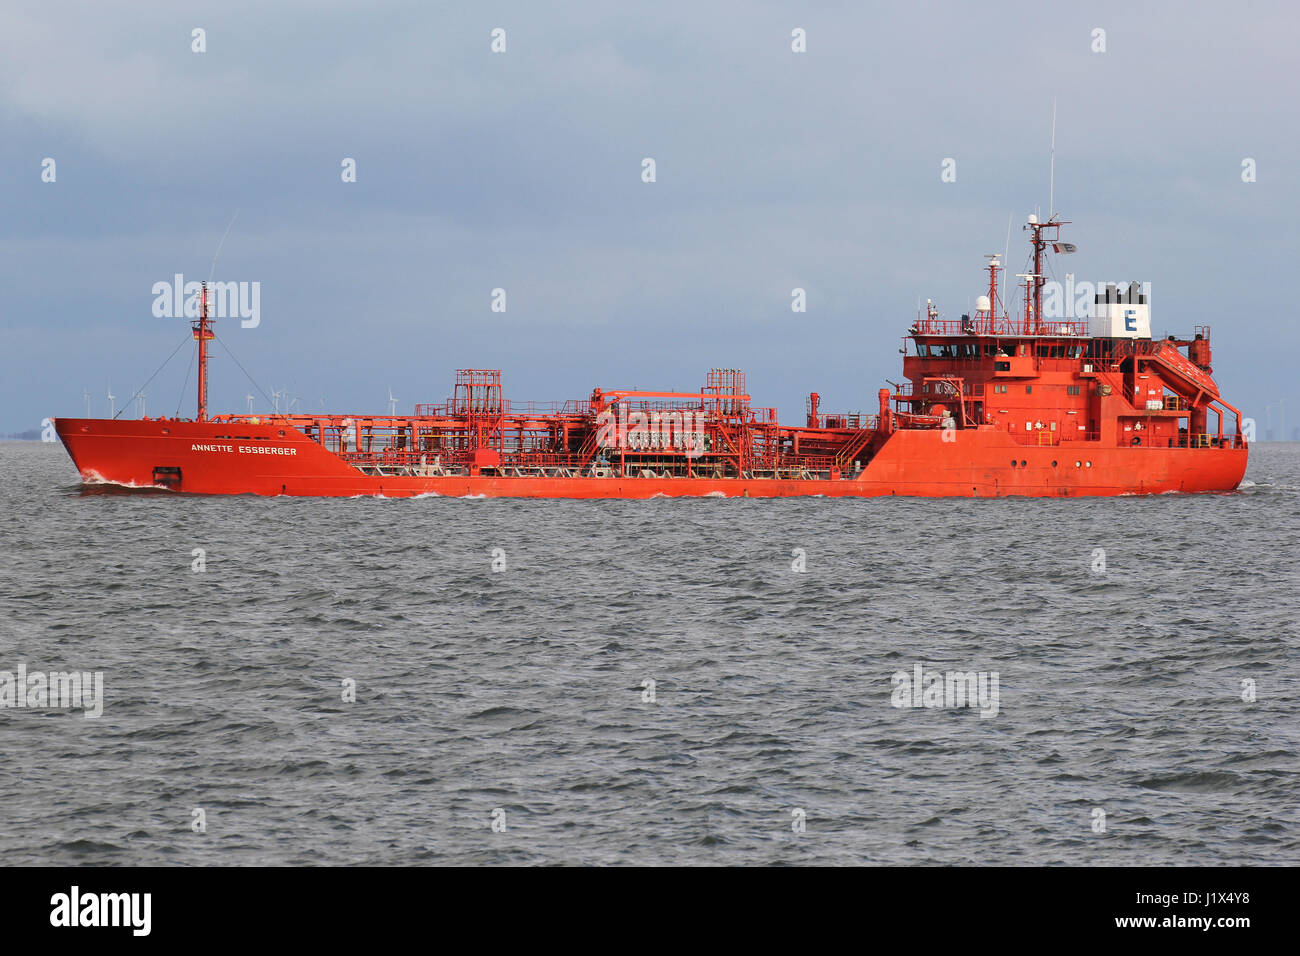 ANNETTE ESSBERGER on the river Elbe. Essberger Tankers is a leading operator of chemical tankers within Europe. - Stock Image